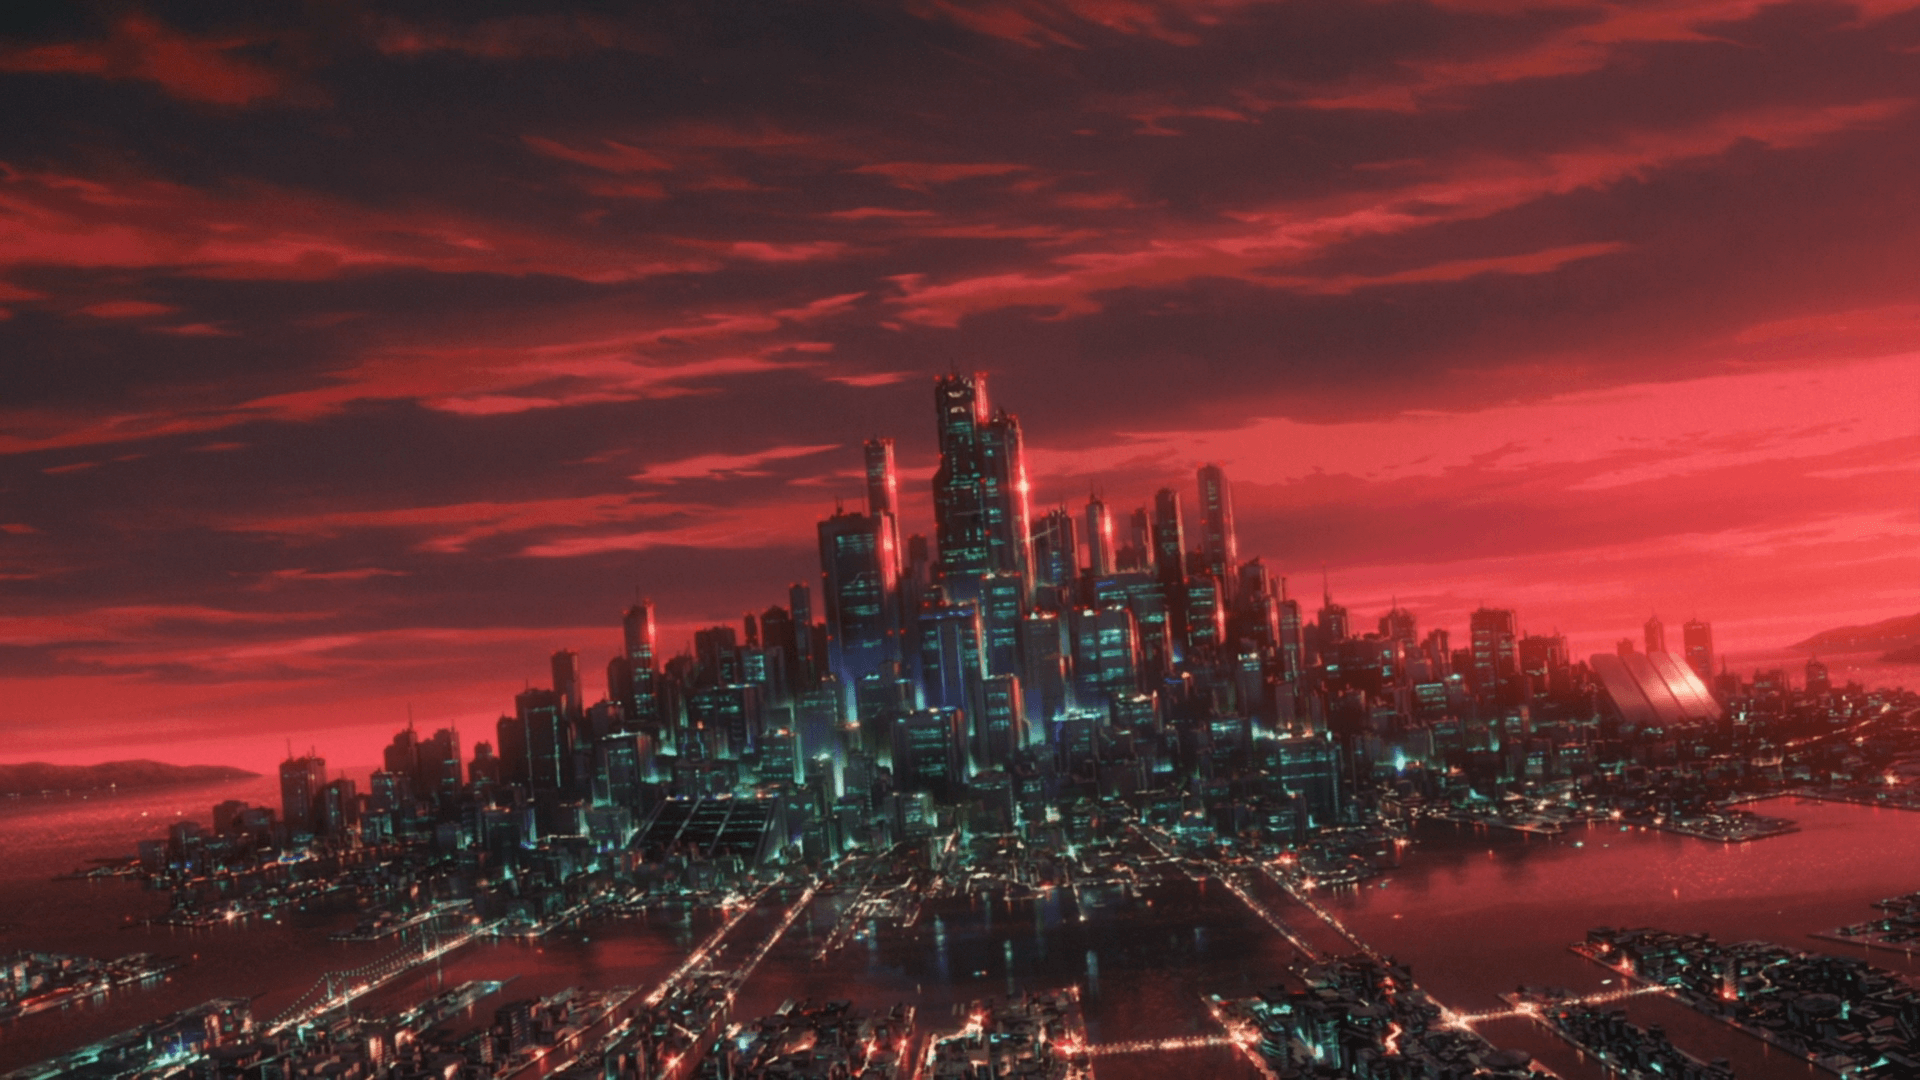 Ghost In The Shell City Wallpapers Top Free Ghost In The Shell City Backgrounds Wallpaperaccess